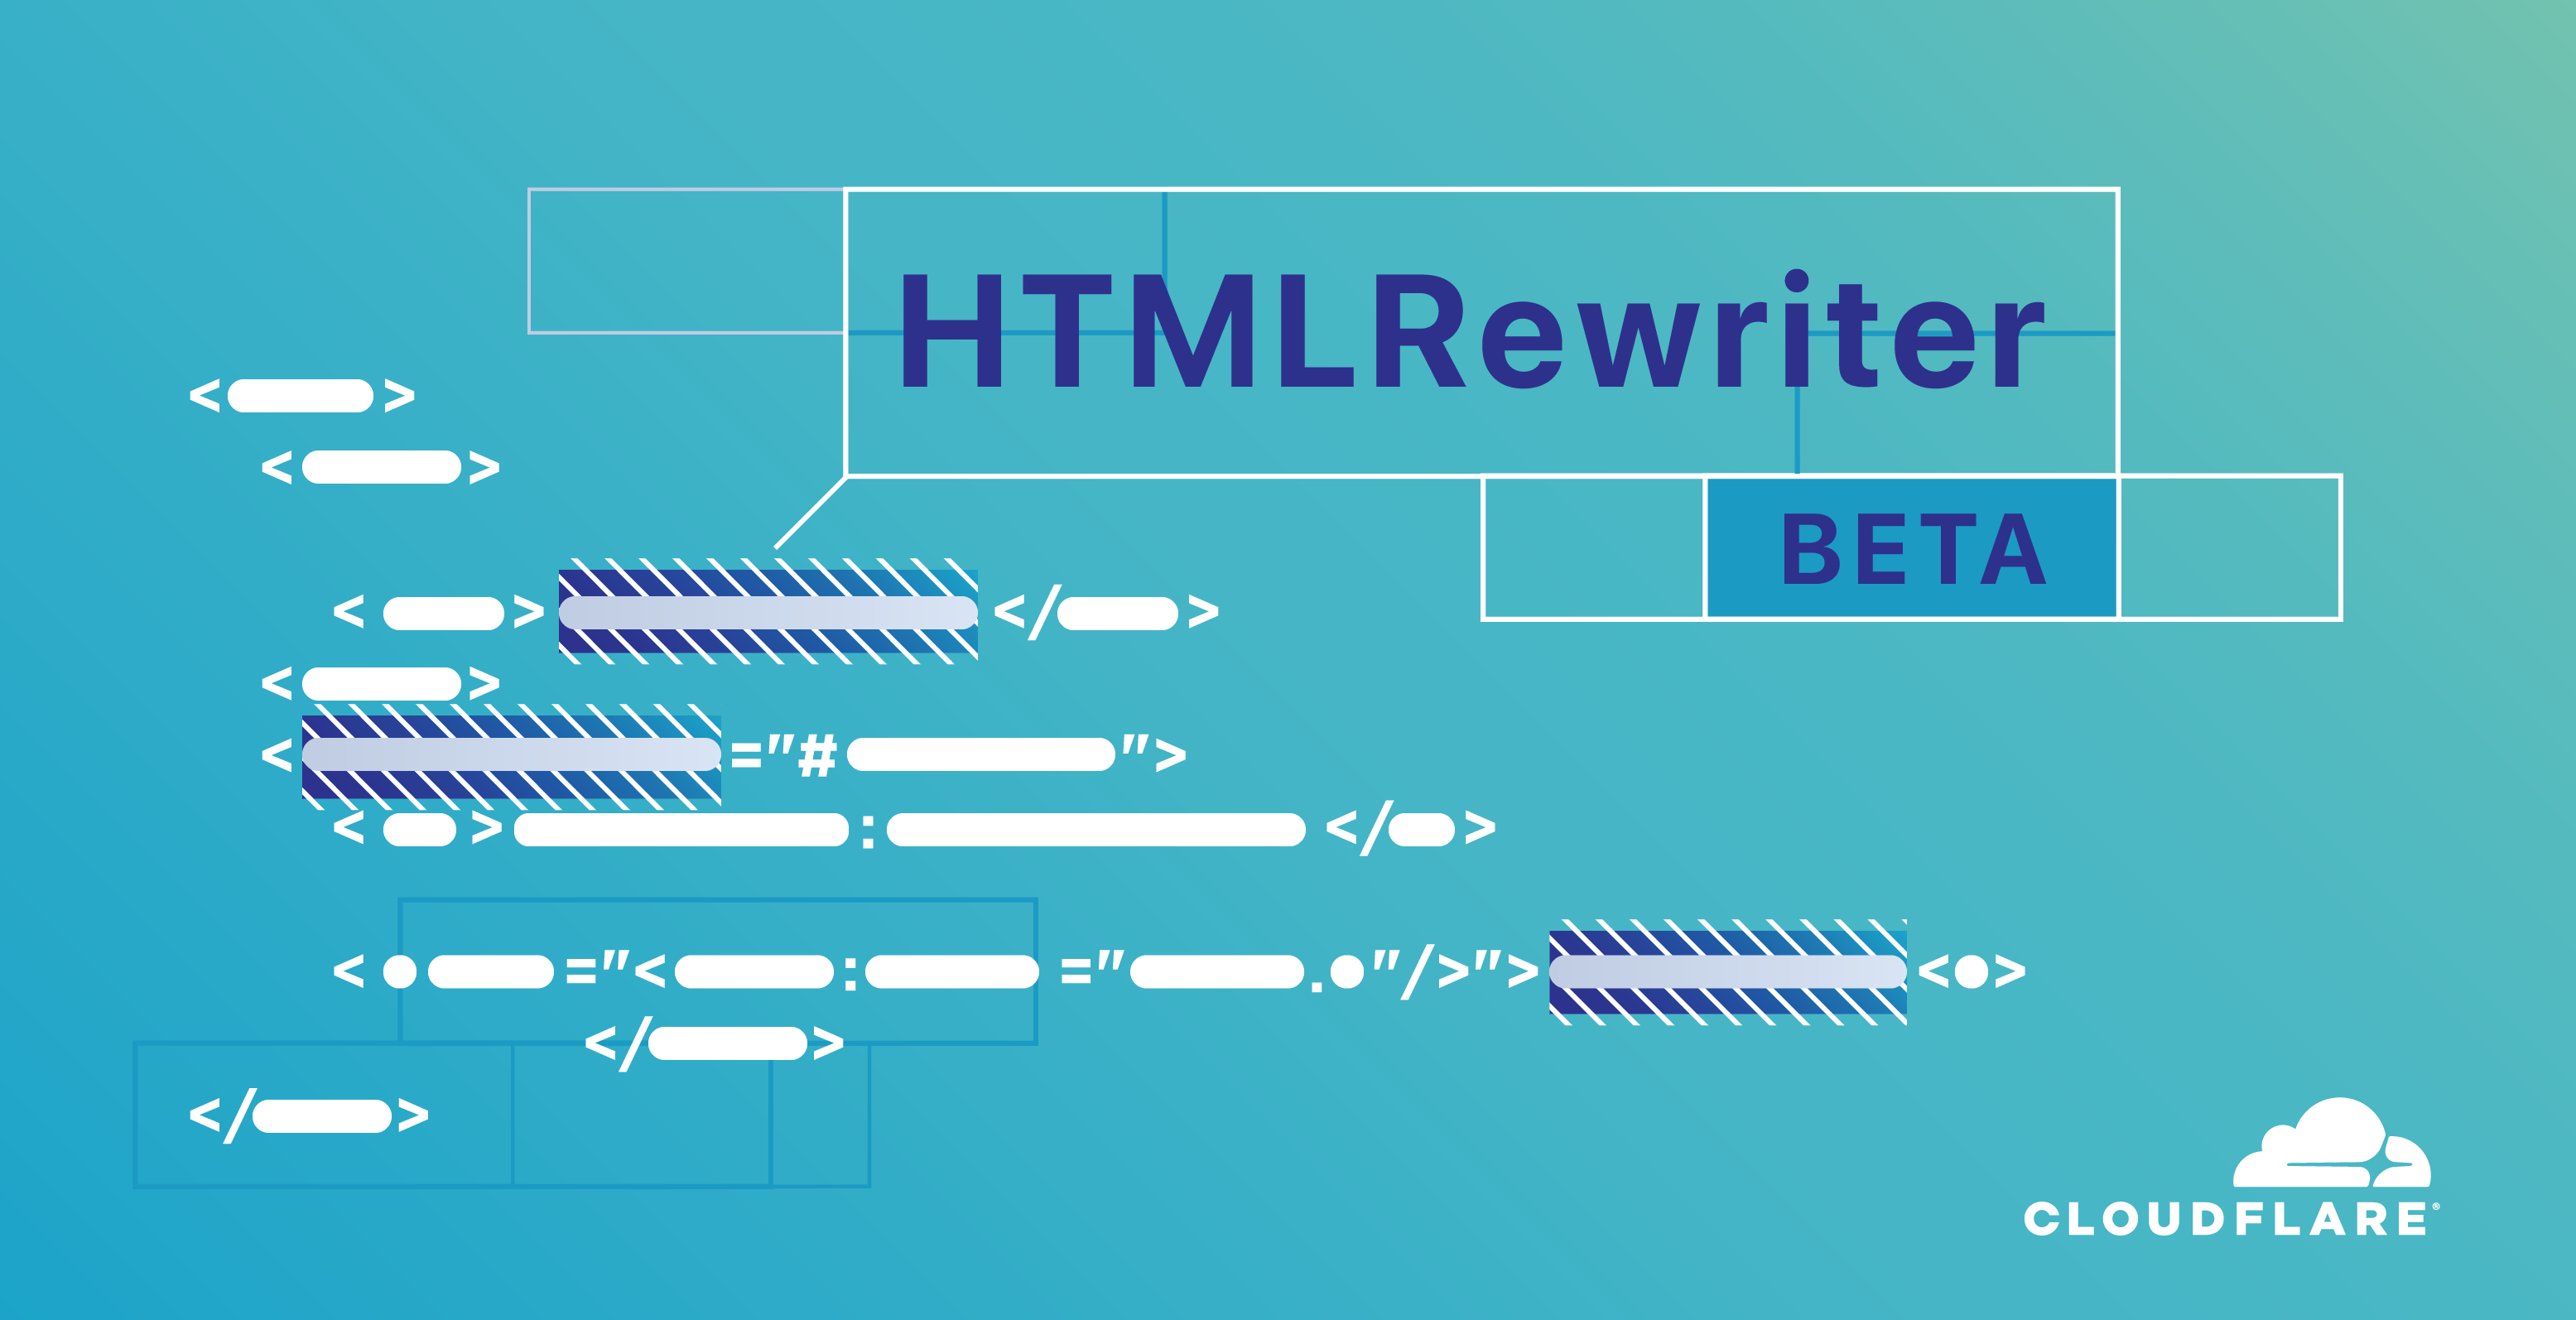 Not so static... Introducing the HTMLRewriter API Beta to Cloudflare Workers